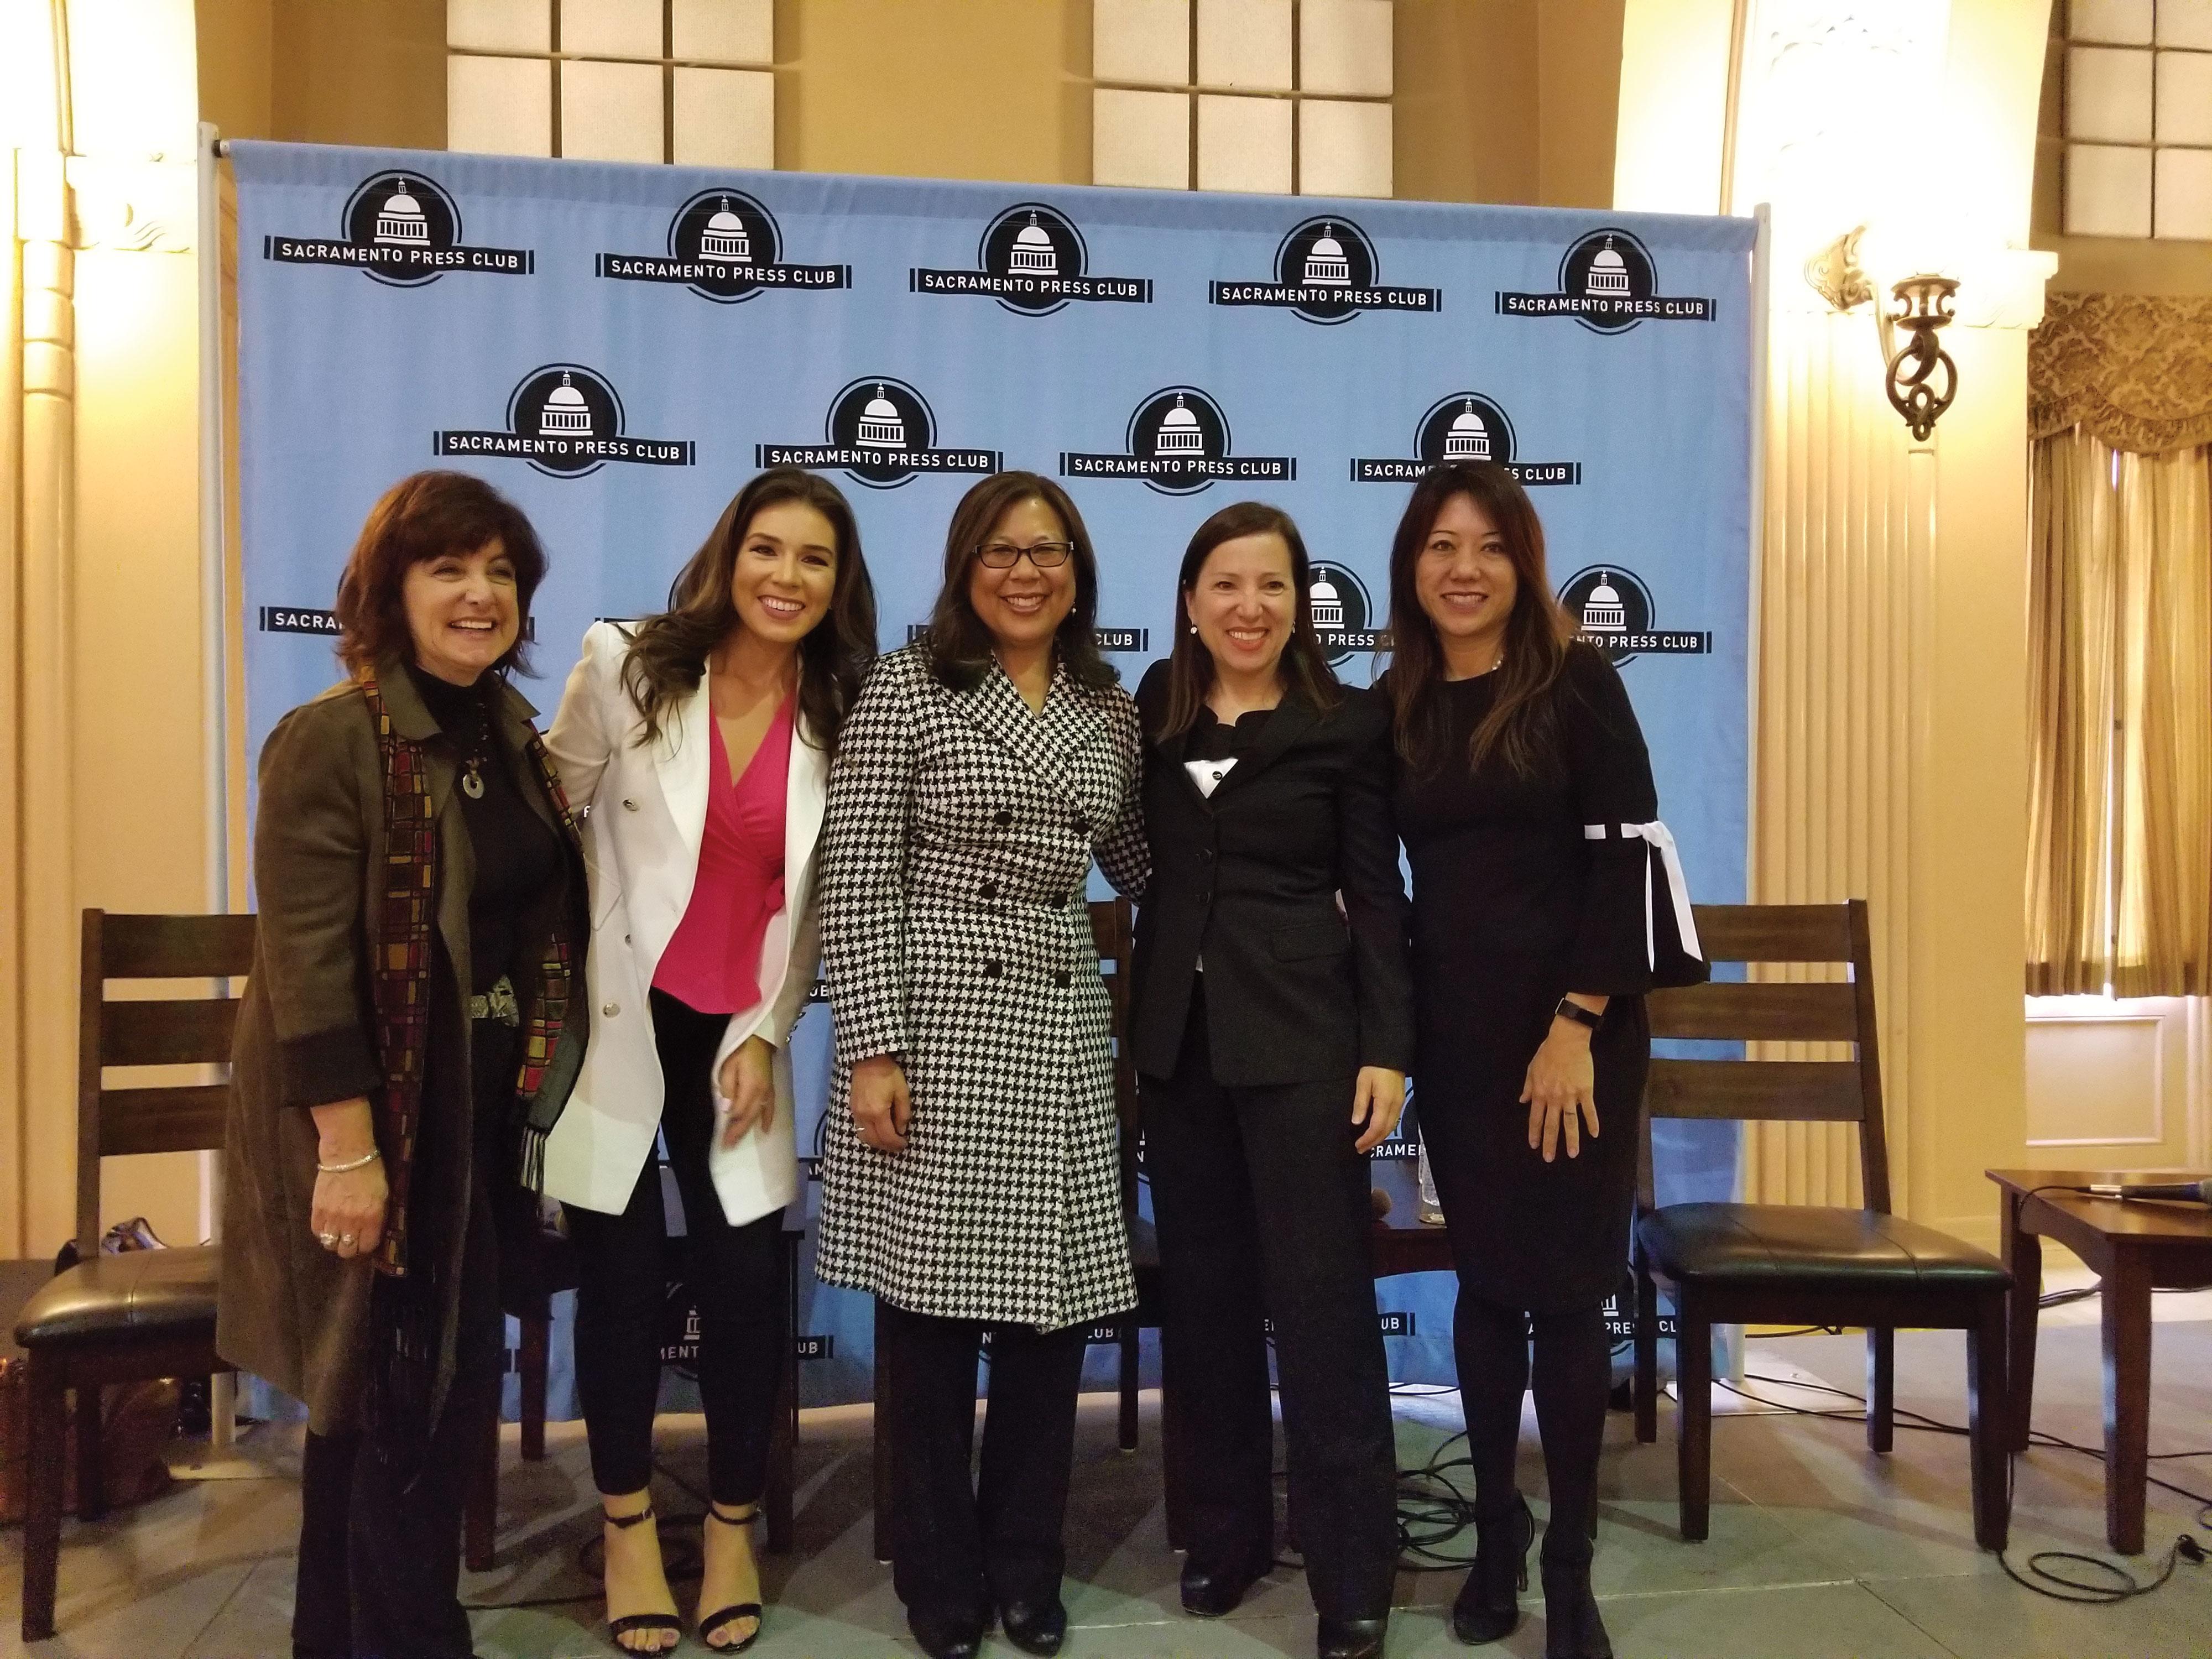 Treasurer Ma with Lieutenant Governor Eleni Kounalakis, State Controller Betty Yee, and journalists Ashley Zavala from KRON and Carla Marinucci of Politico, at a panel discussion on women empowerment presented by the Sacramento Press Club.